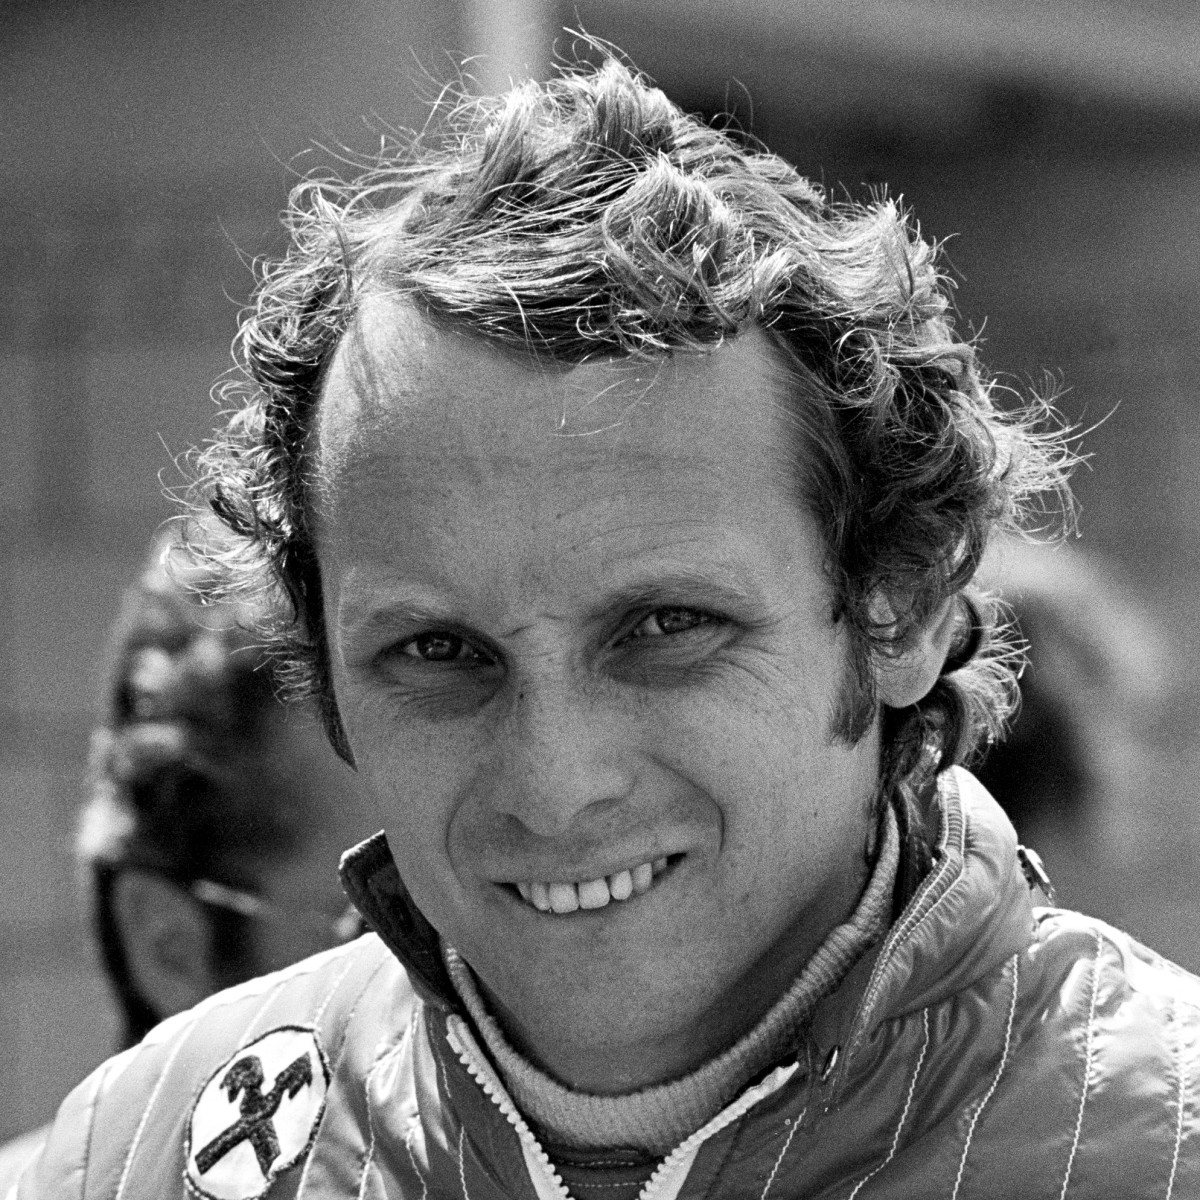 Niki Lauda - Race Car Driver - Biography